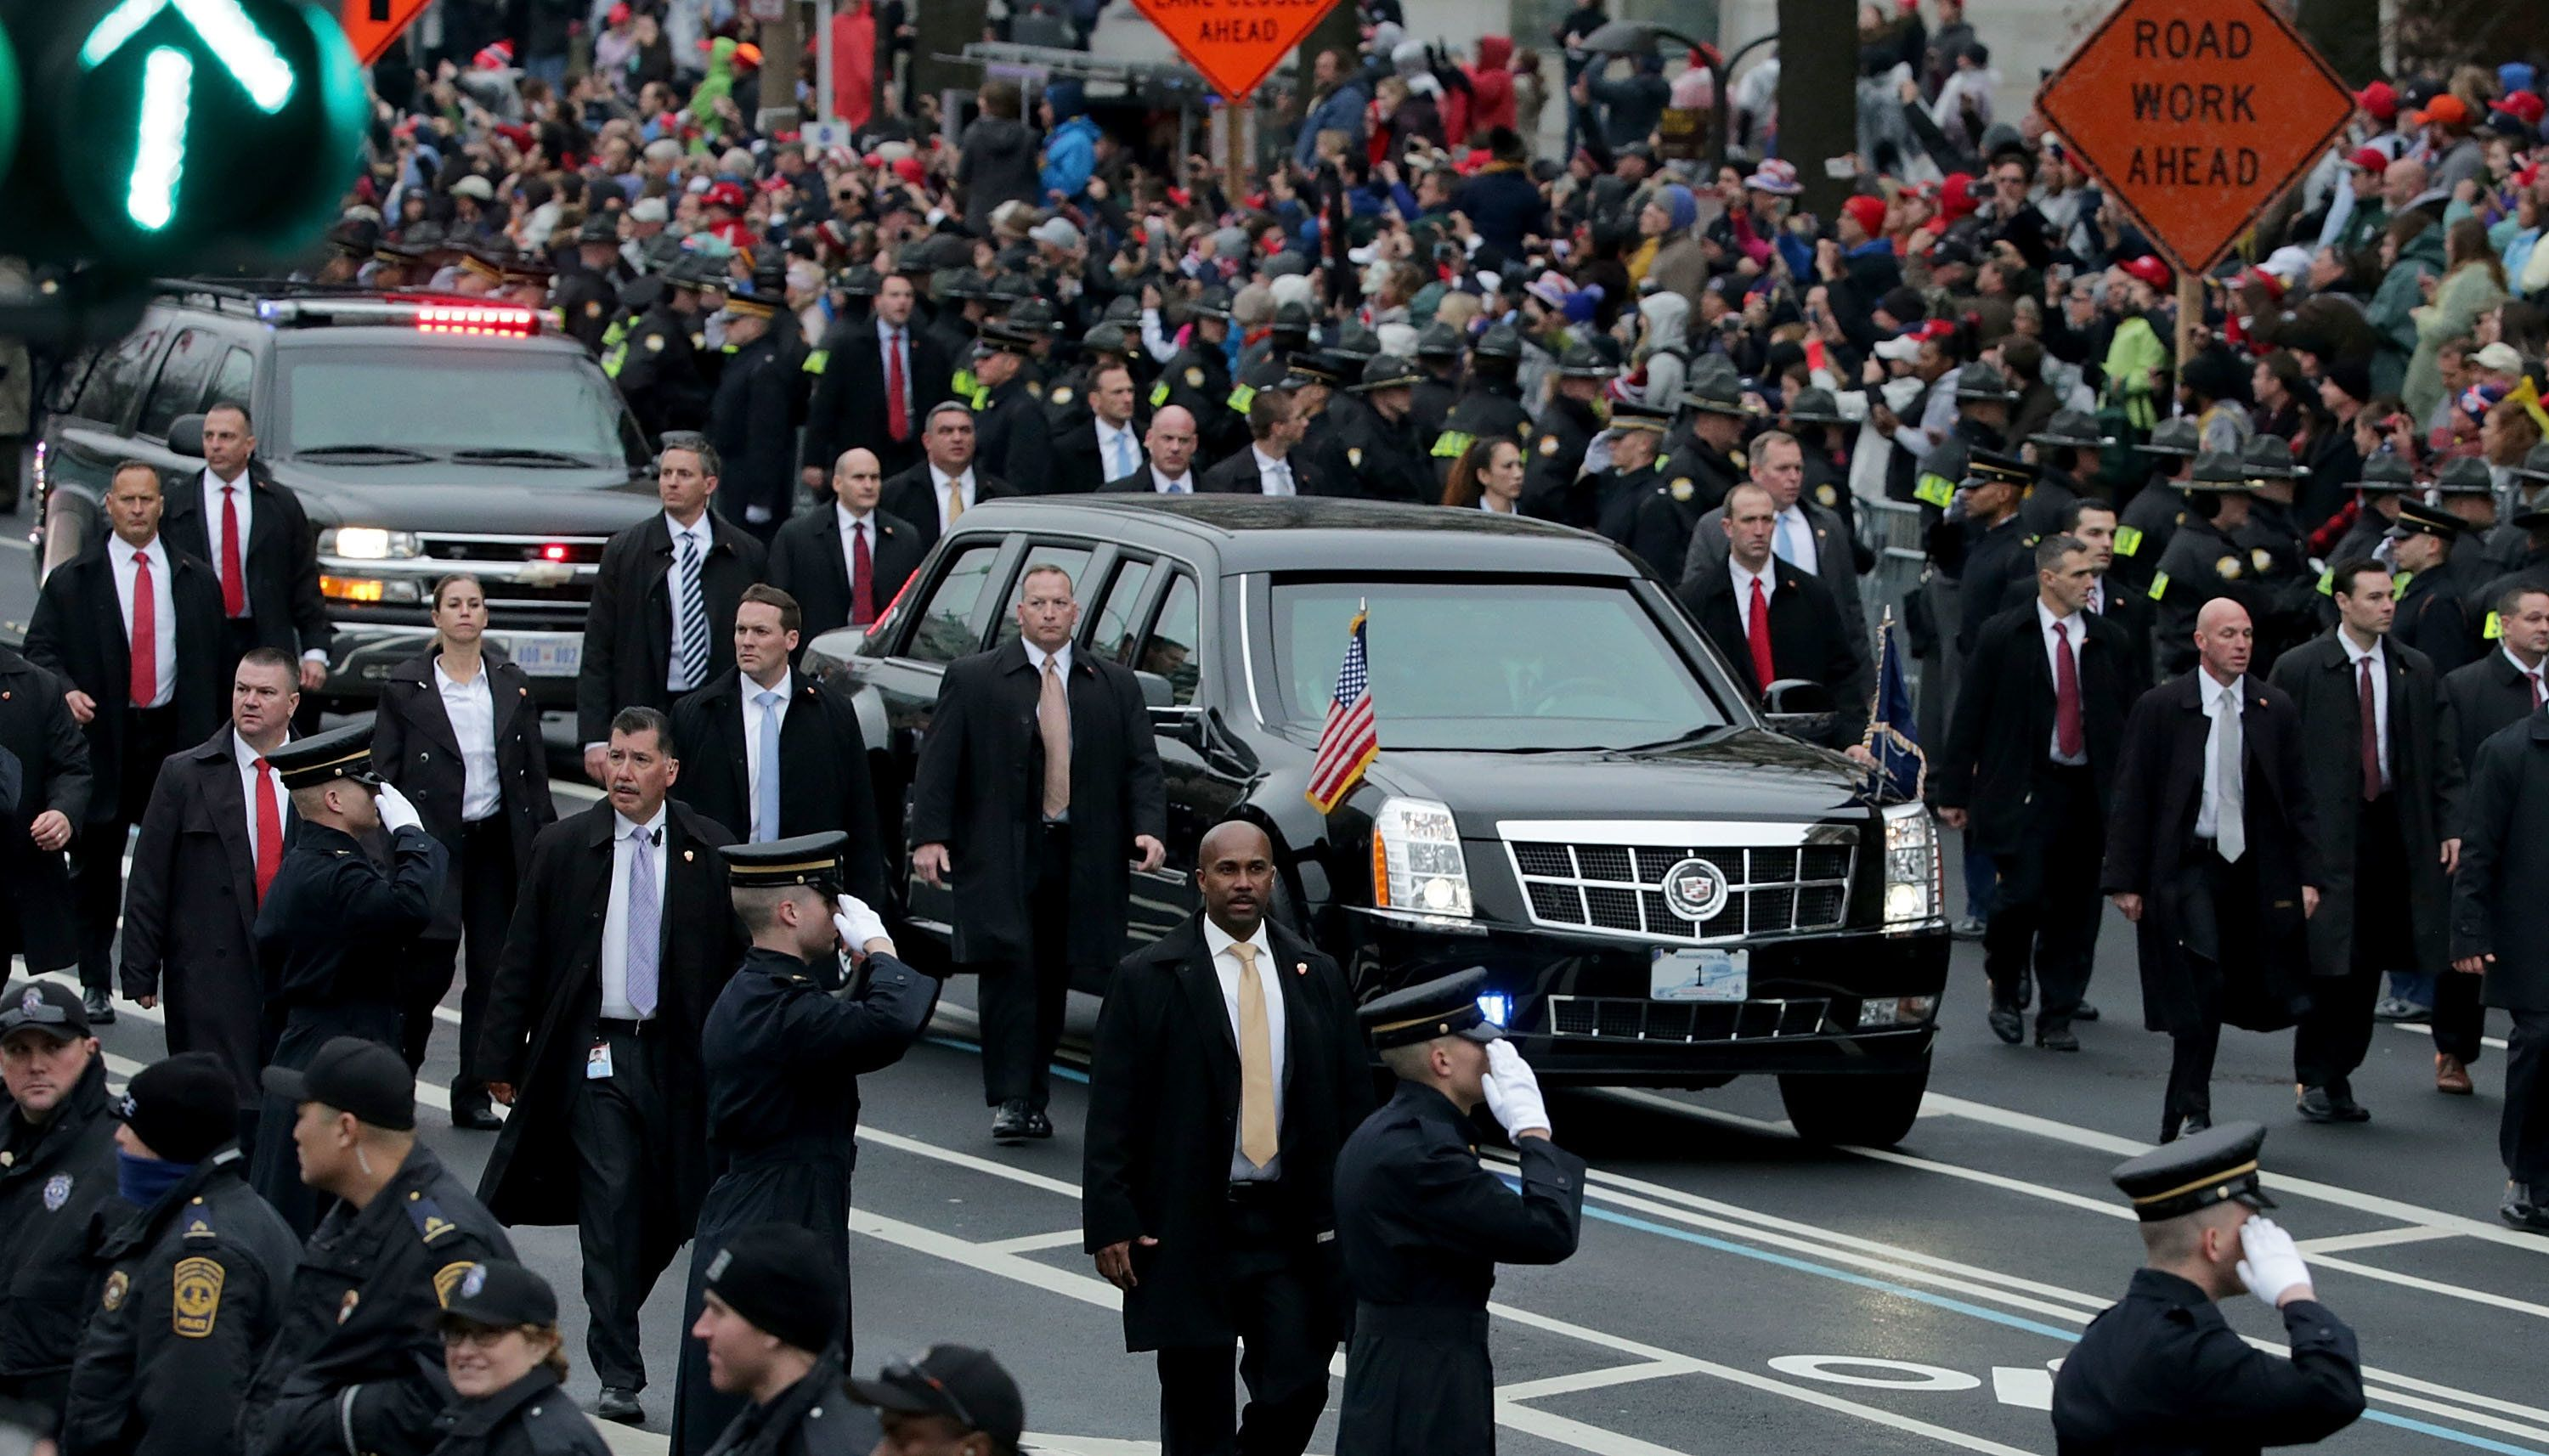 WASHINGTON, DC - JANUARY 20:  Spectators line the sides of Pennsylvania Avenue as U.S. Secret Service agents walk alongside the presidential limousine  during the Inaugural Parade for U.S. President Donald J. Trump January 20, 2017 in Washington, DC. Trump was sworn in today as the 45th president of the United States.  (Photo by Chip Somodevilla/Getty Images)